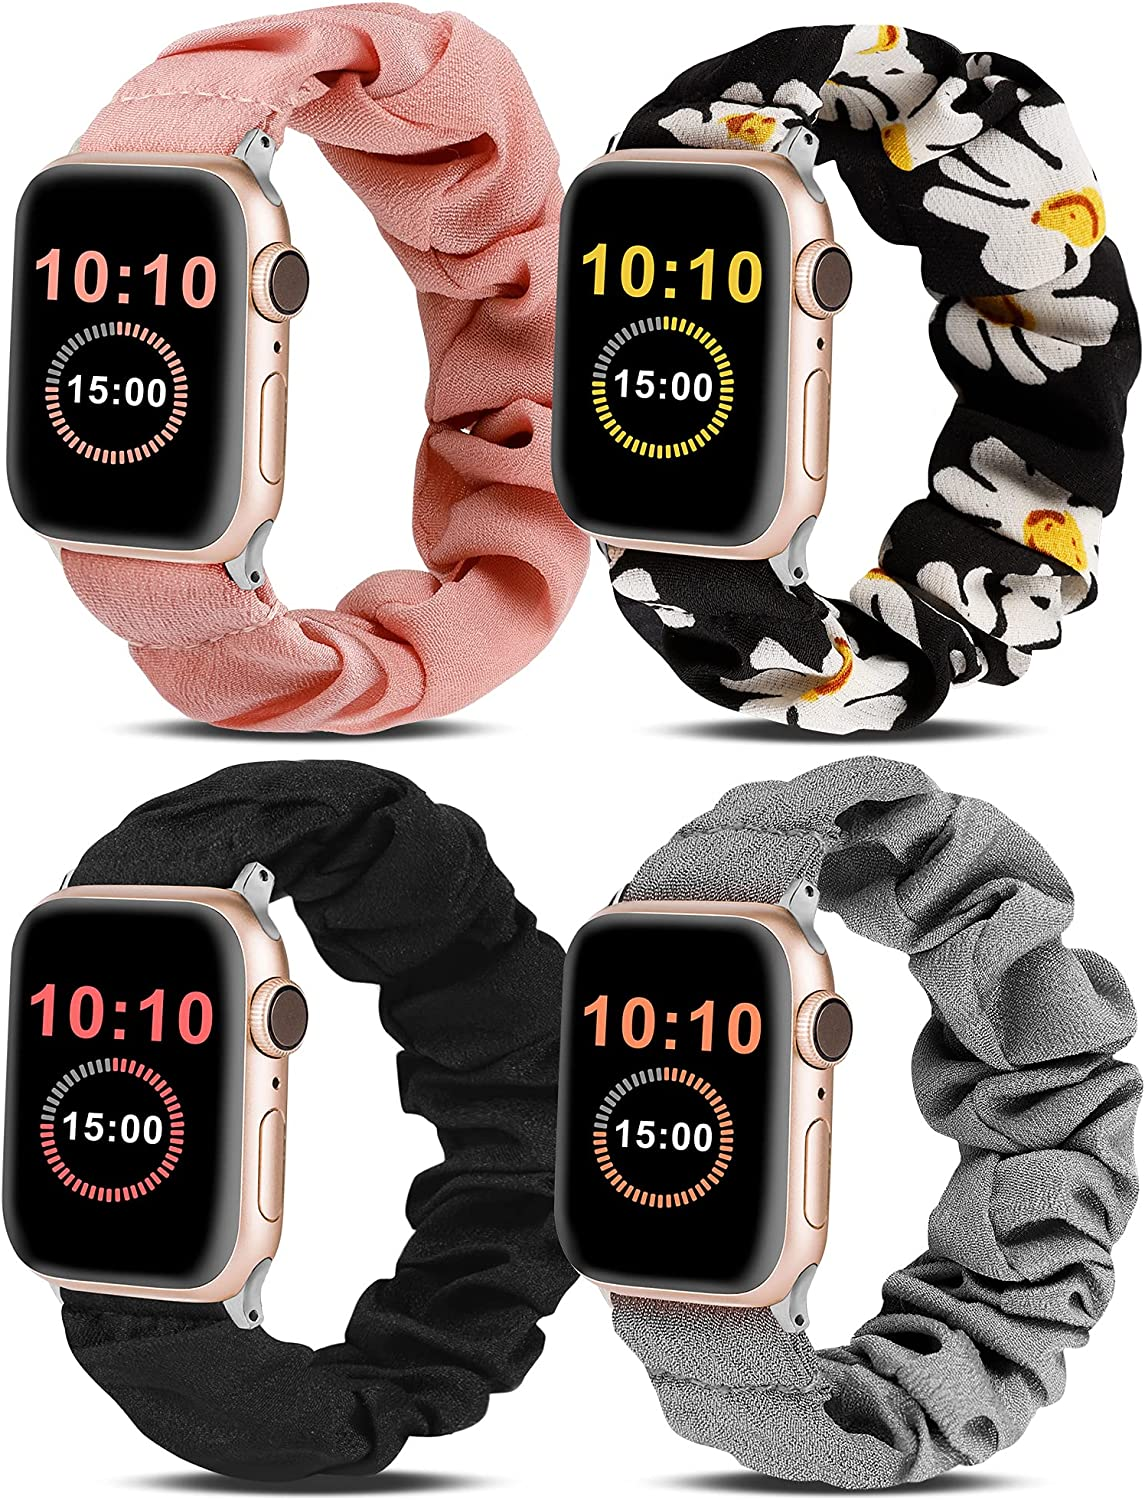 Wearlizer 4 Packs Compatible for Apple Watch Band Scrunchie Soft Cloth 38mm 42mm Cute Printed Elastic Watch Bands Women Stretchy Bracelet Wristband Strap for Apple iWatch 7/SE/6/5/4/3/2/1